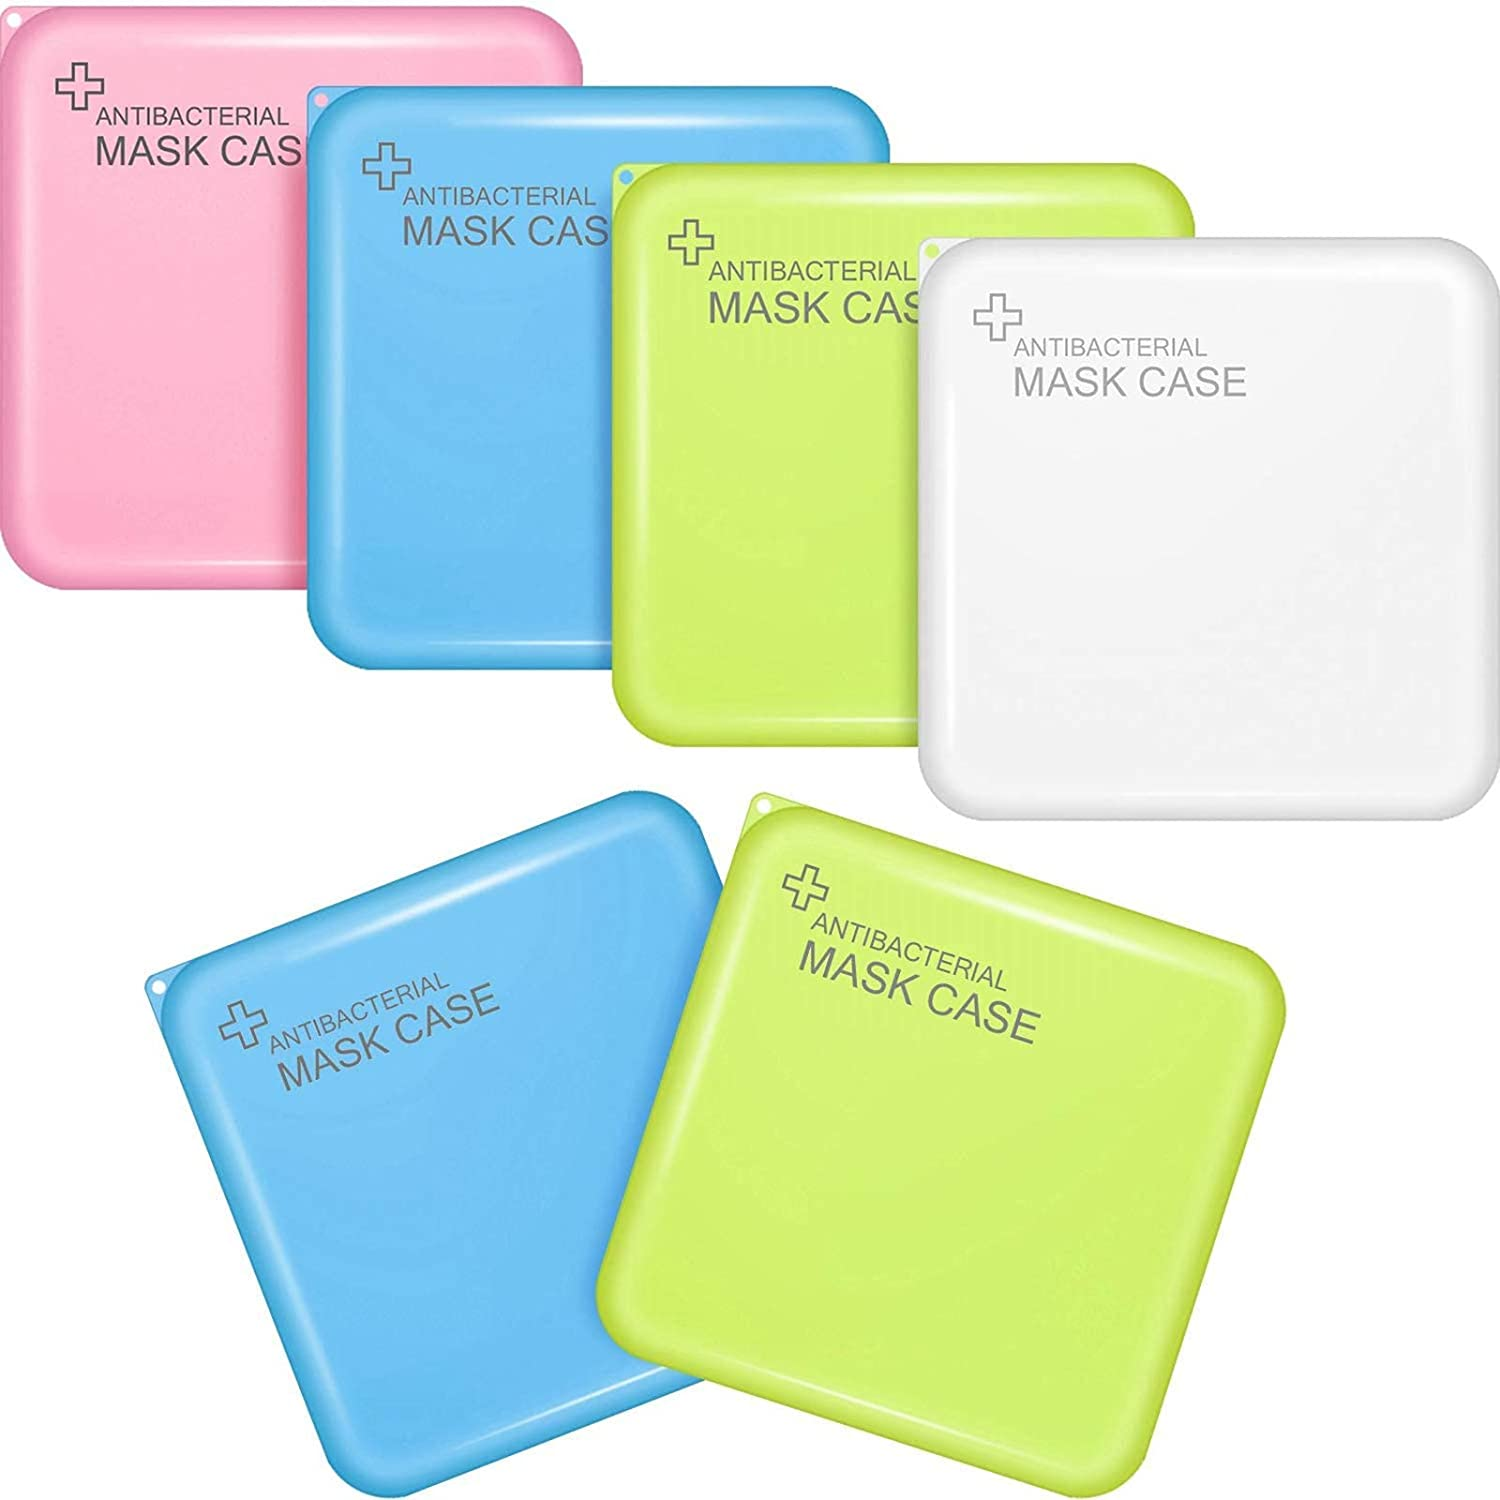 Plastic Storage Face Protector Case Organizer Reusable Keeper Folder, Portable Plastic Storage Boxes with Lids, Storage Clip Foldable Storage Organizer Case (Mixed Color)